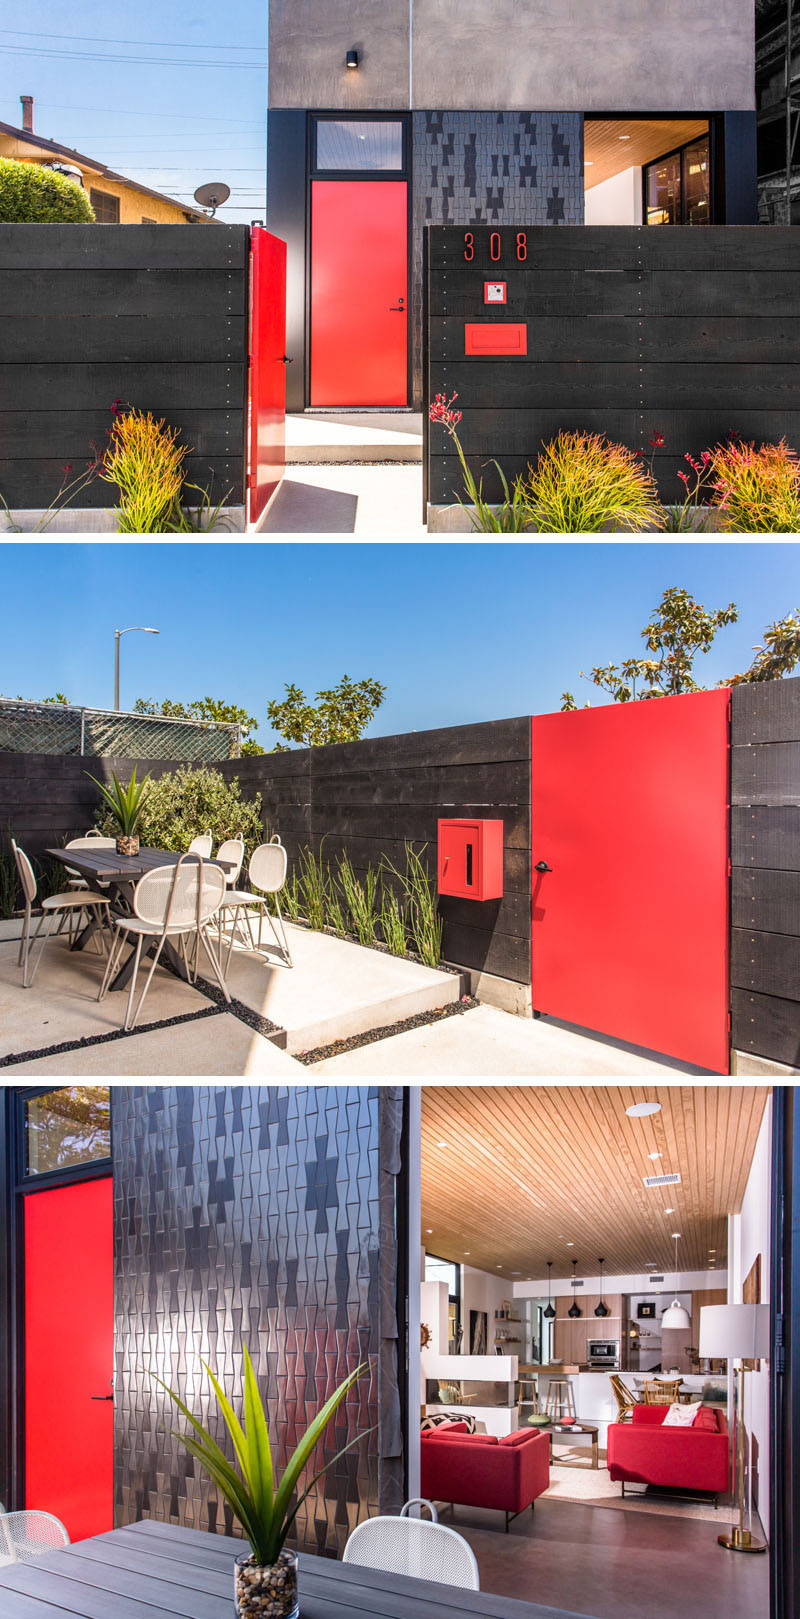 This modern house has two entrances that standout, one red gate leading onto the courtyard, and a red front door that leads into the home.